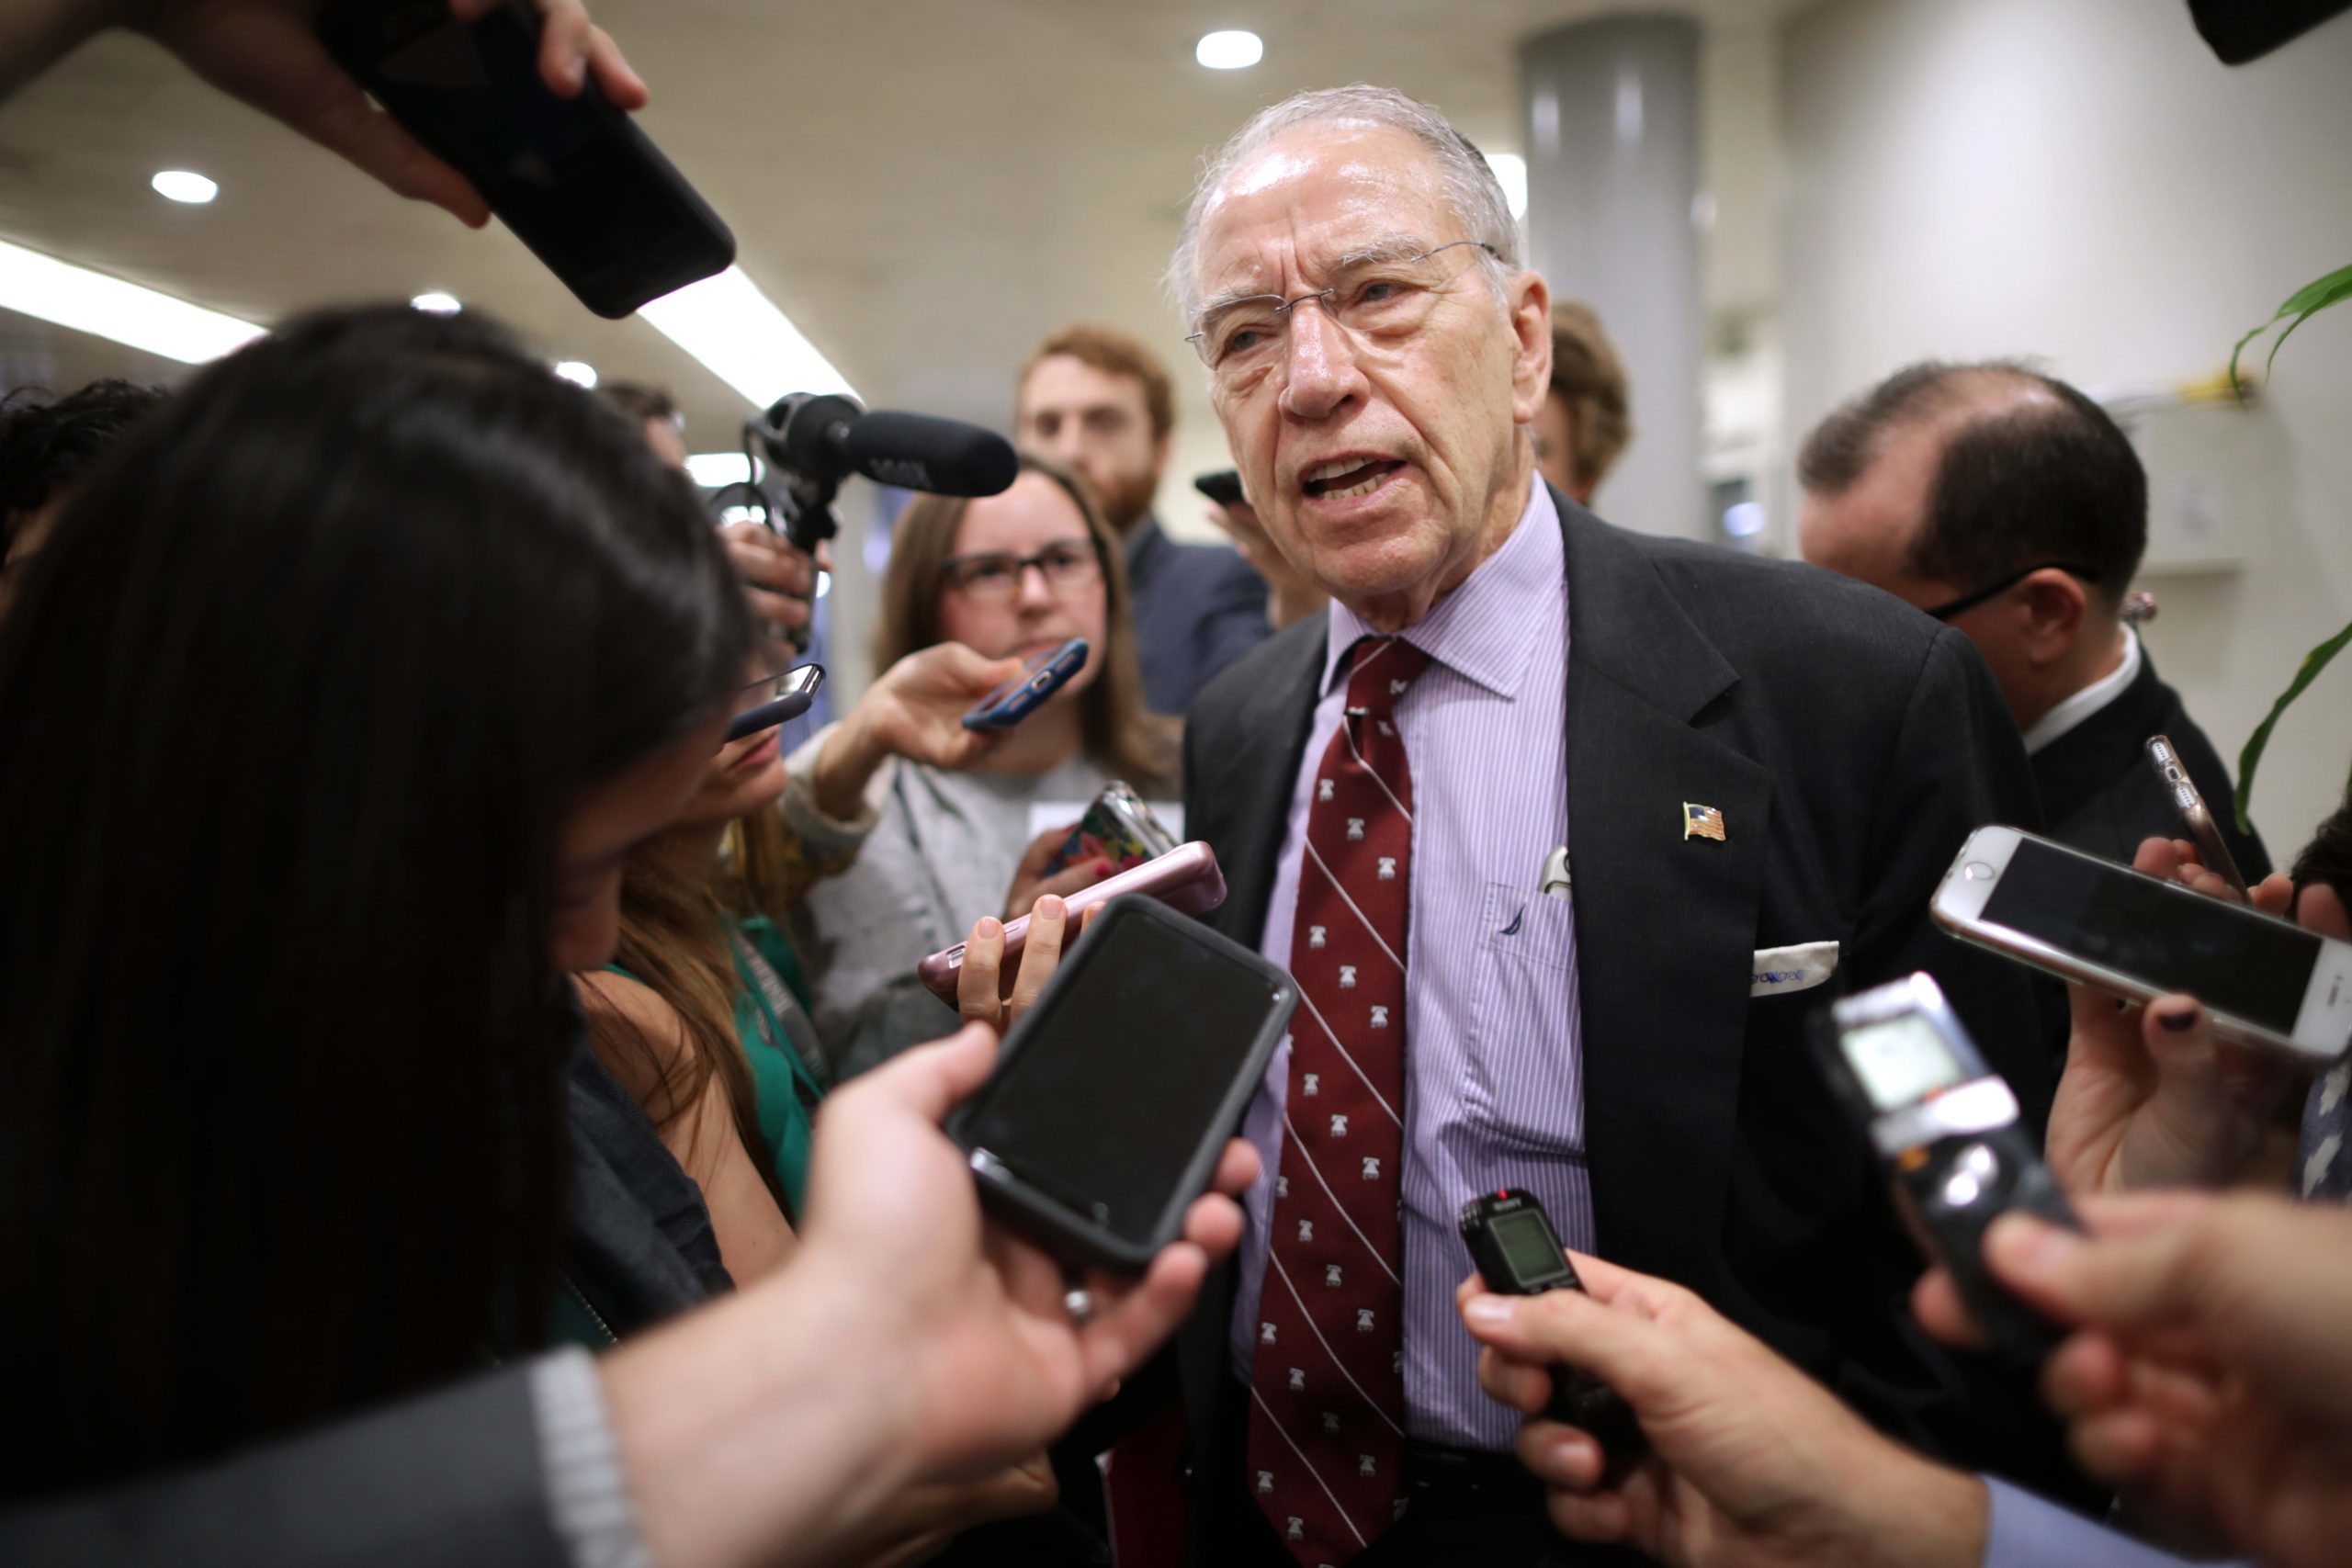 GOP Sen. Grassley says Mitch McConnell sabotaged support for his drug pricing bill